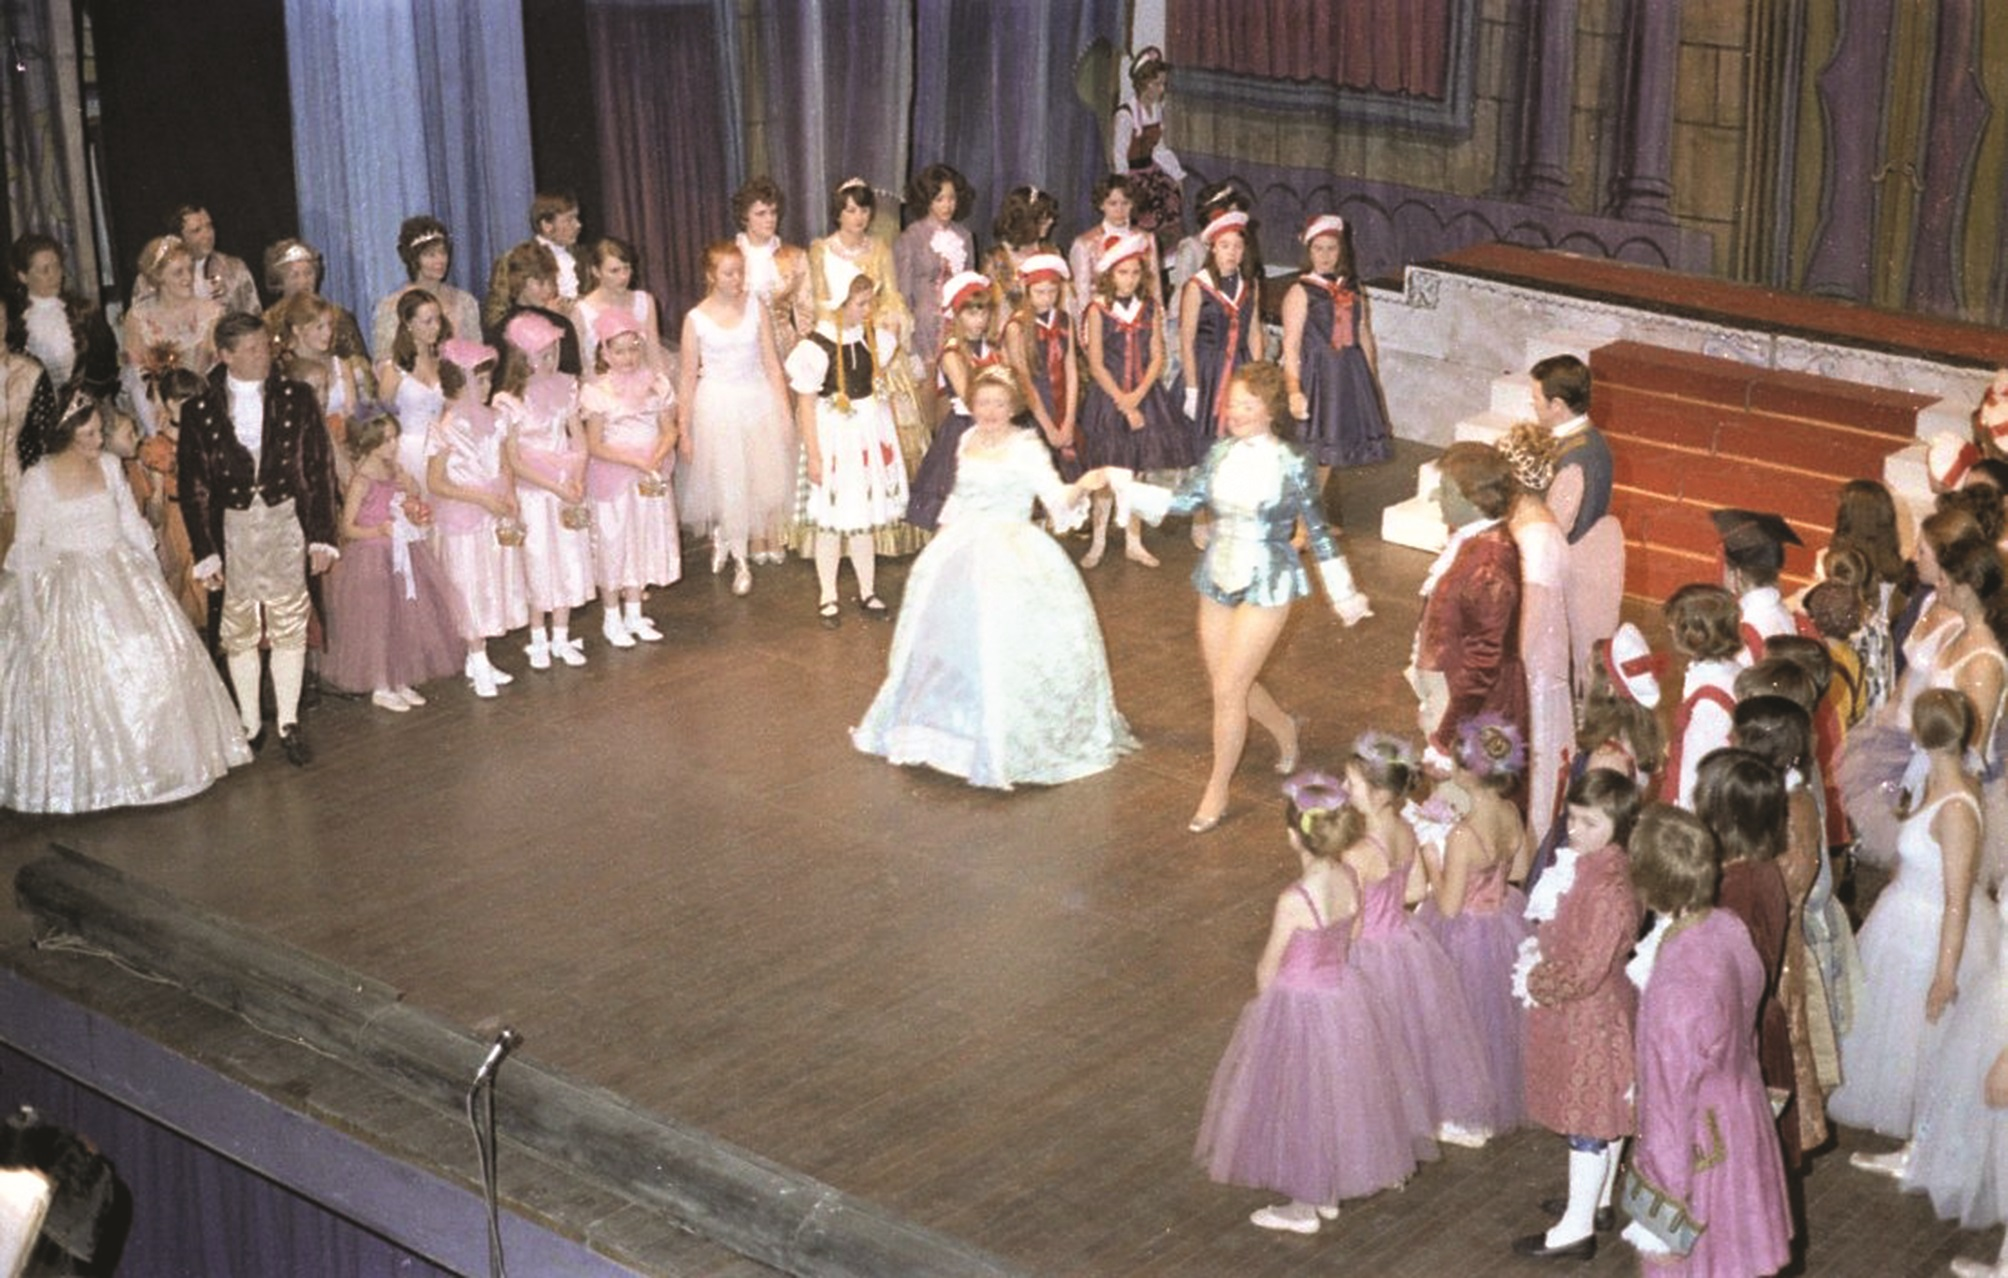 A scene from the 1974 pantomime staged at Newport's Dolman Theatre recalled along with other theatrical events in Jan Preece's book,  Now That's What I Call Newport,  published by Amberley.